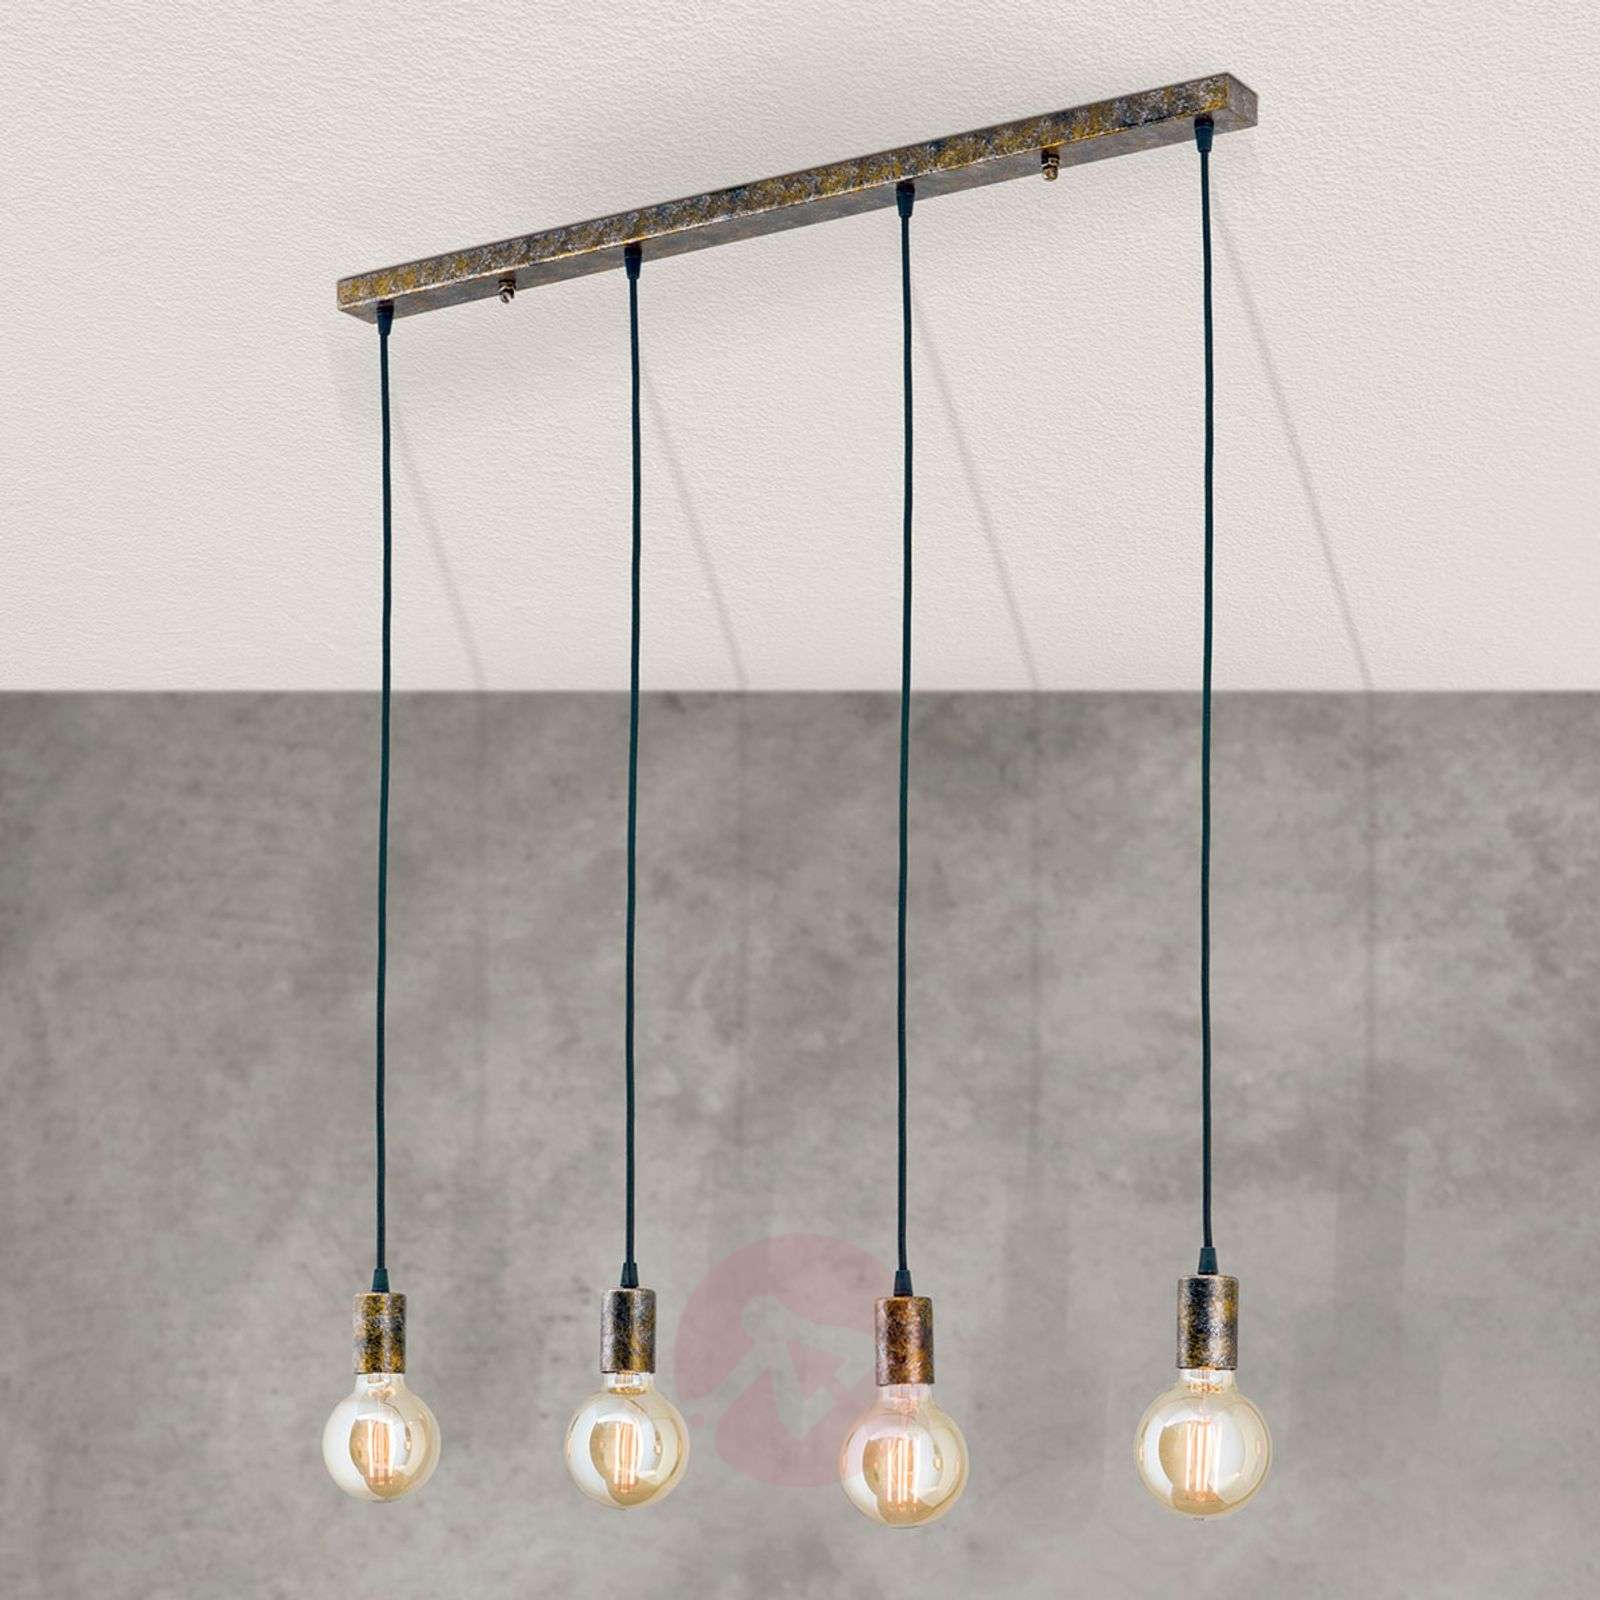 pendant z loft osinnam net american restaurant home bulb lights a vintage decor light for antique with copper holder lamp